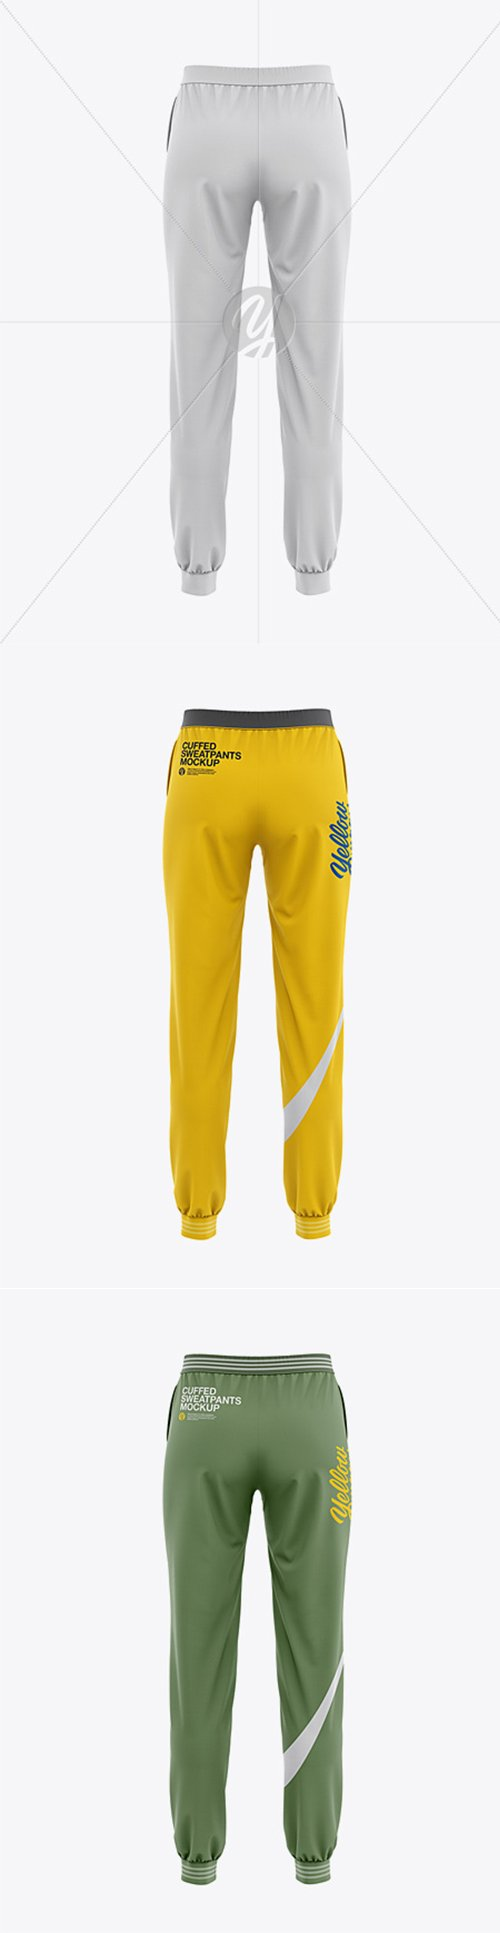 Womens Cuffed Sweatpants Mockup - Back View 34993 TIF